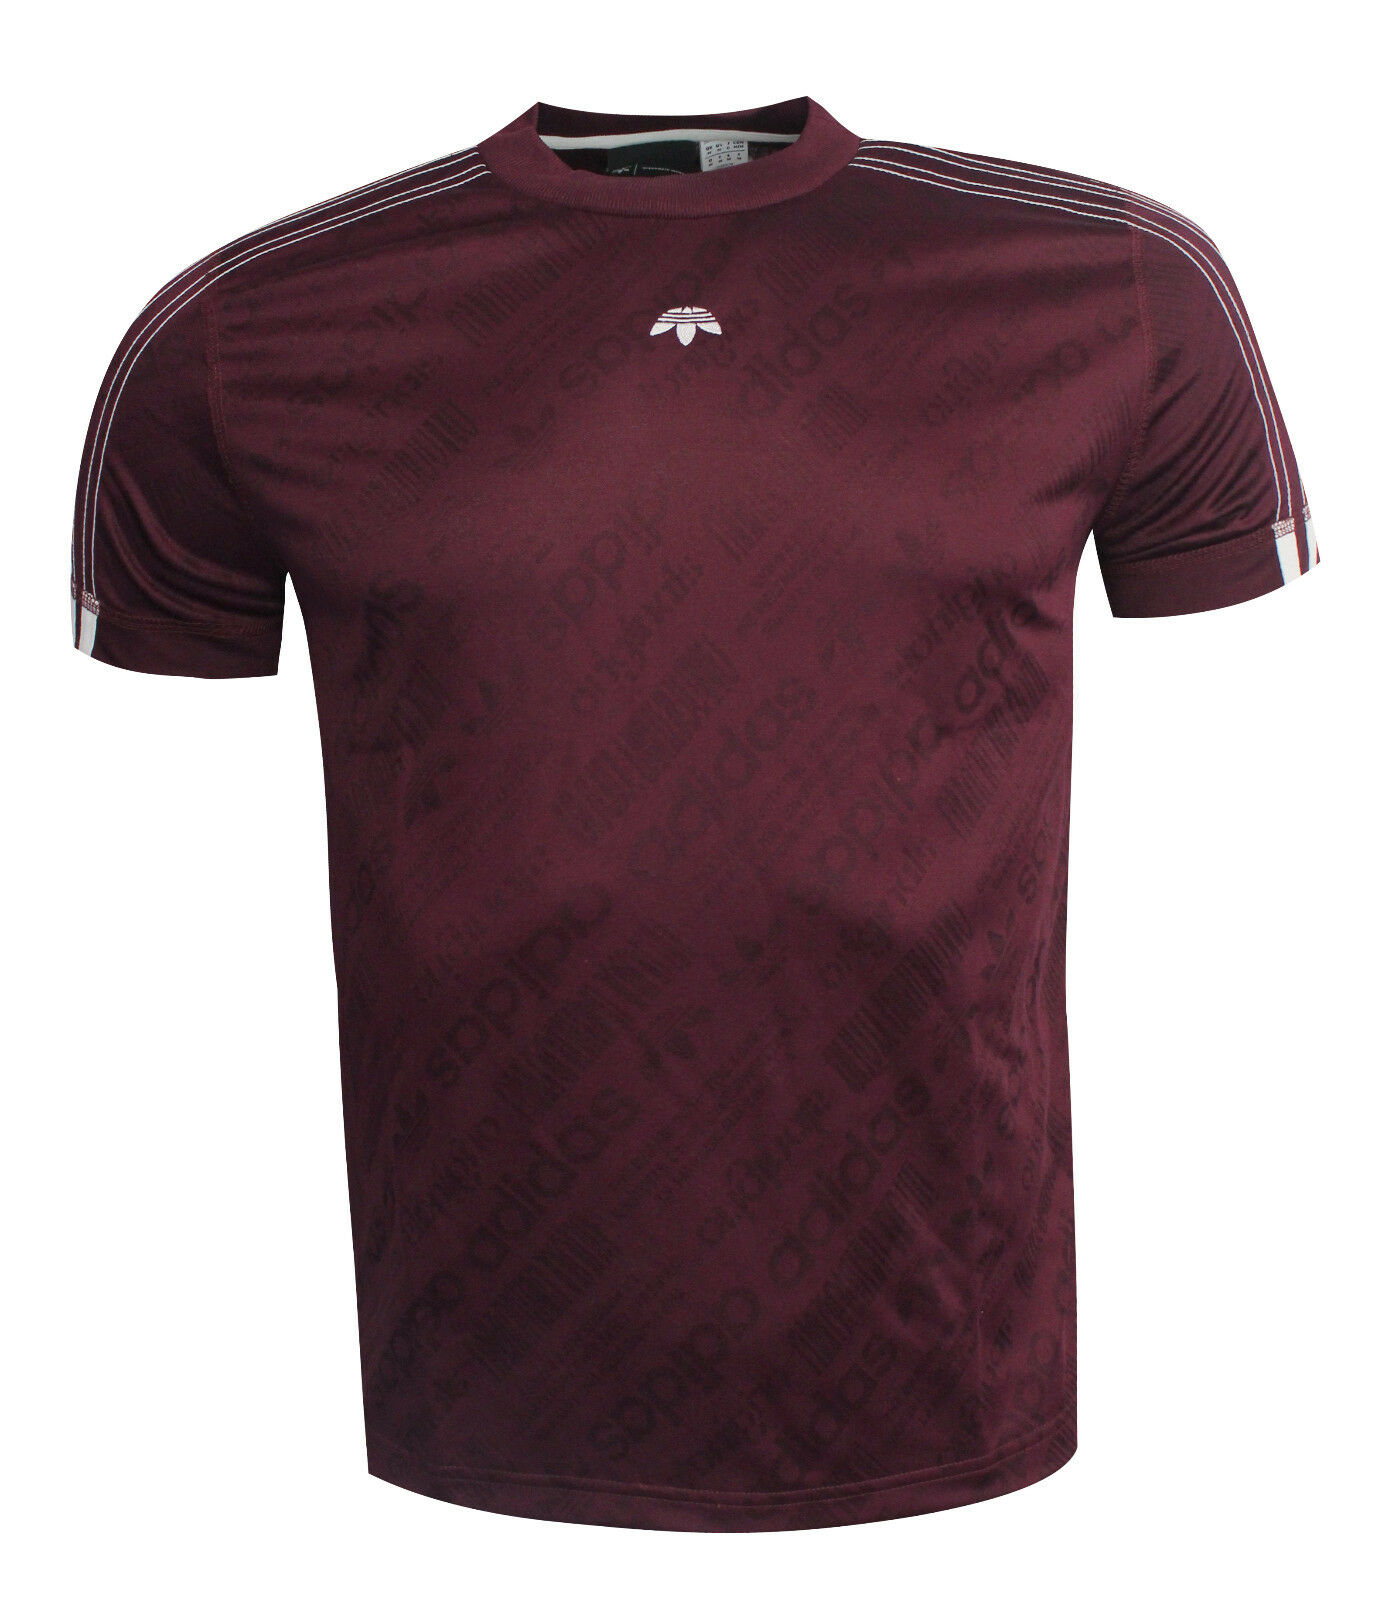 Adidas Originals by Alexander Wang Short Sleeve Uomo T-Shirt Maroon BR0255 EE150